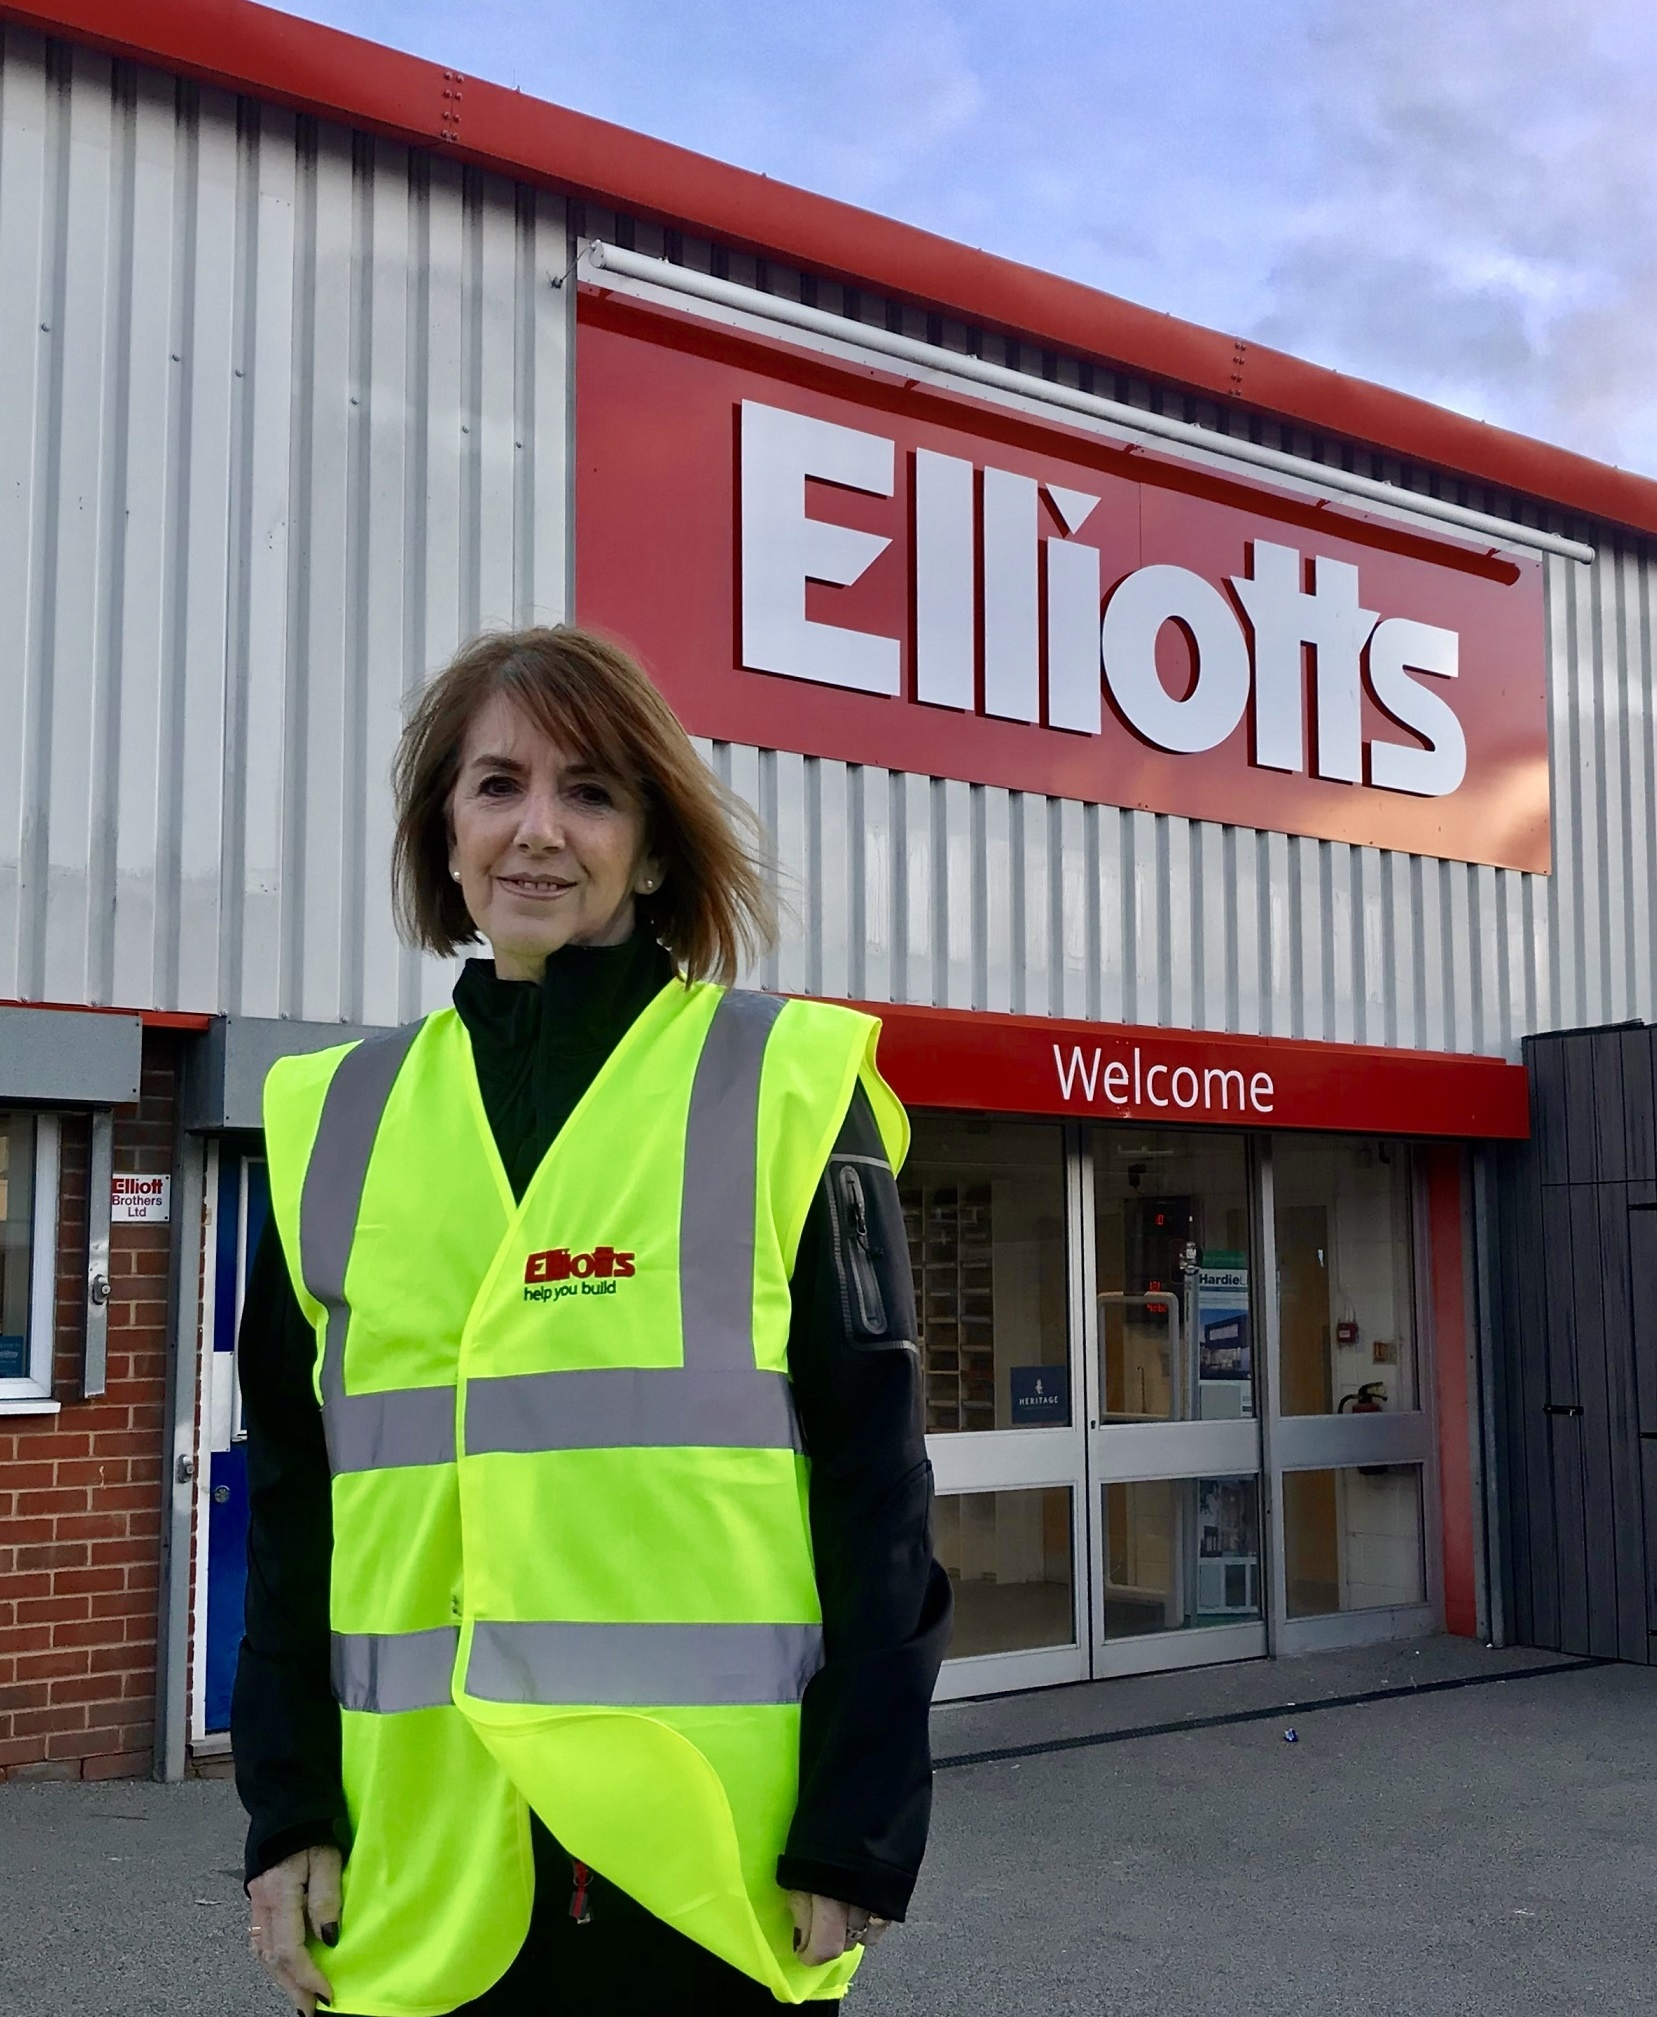 Lauren outside Elliotts Southampton, the founding site of the company